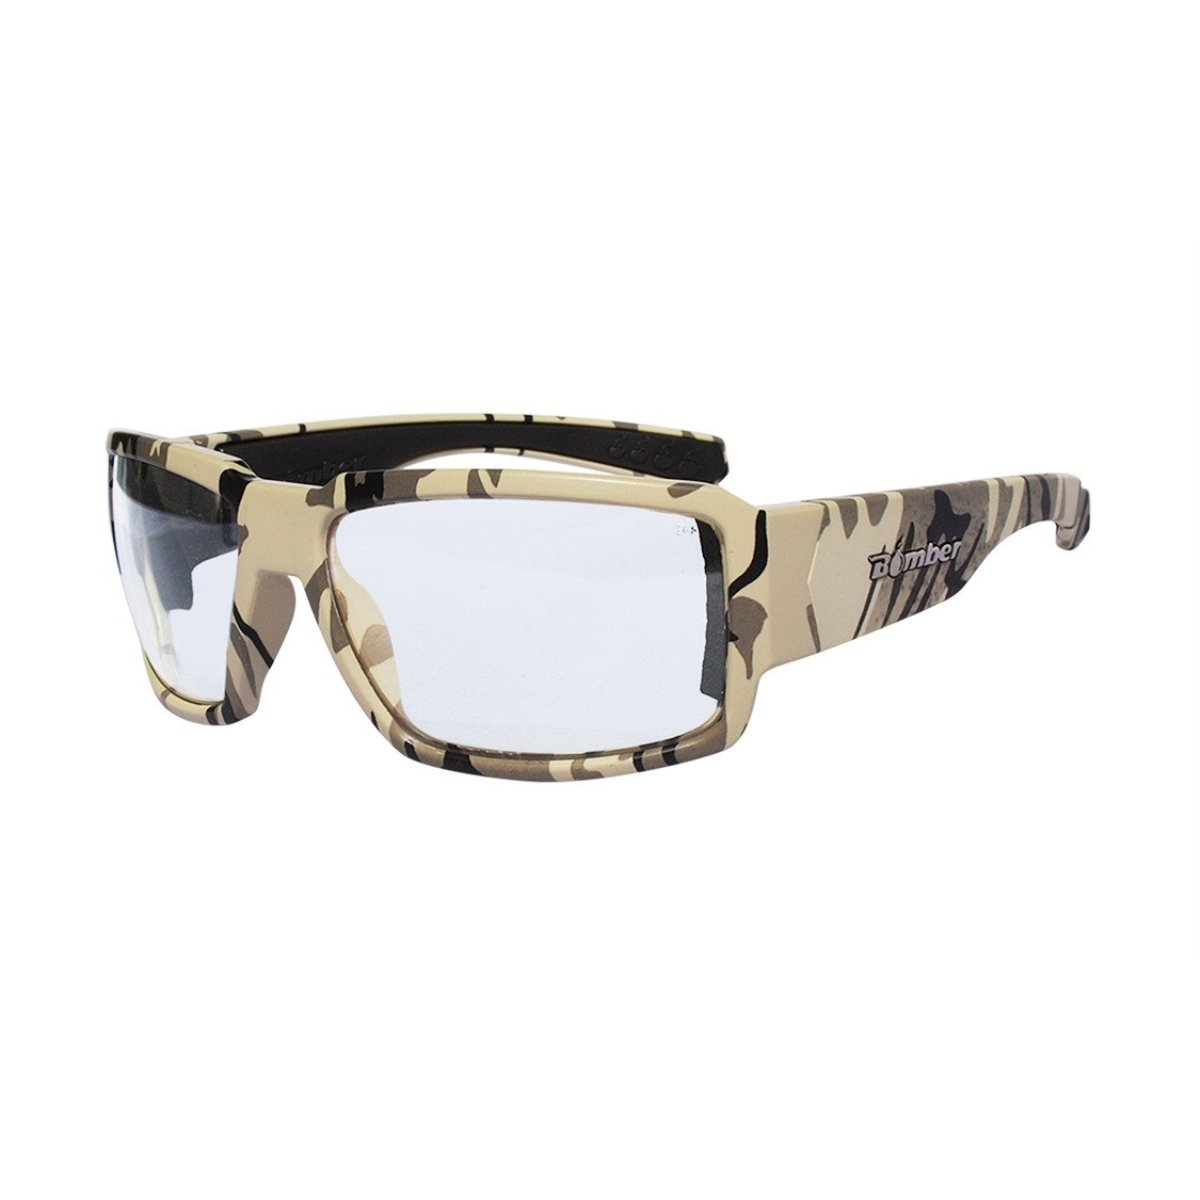 Bomber Sunglasses - Boogie Bomb Sand Camo Frm/Clear ANSI Z87+ safety Lens/Black Foam